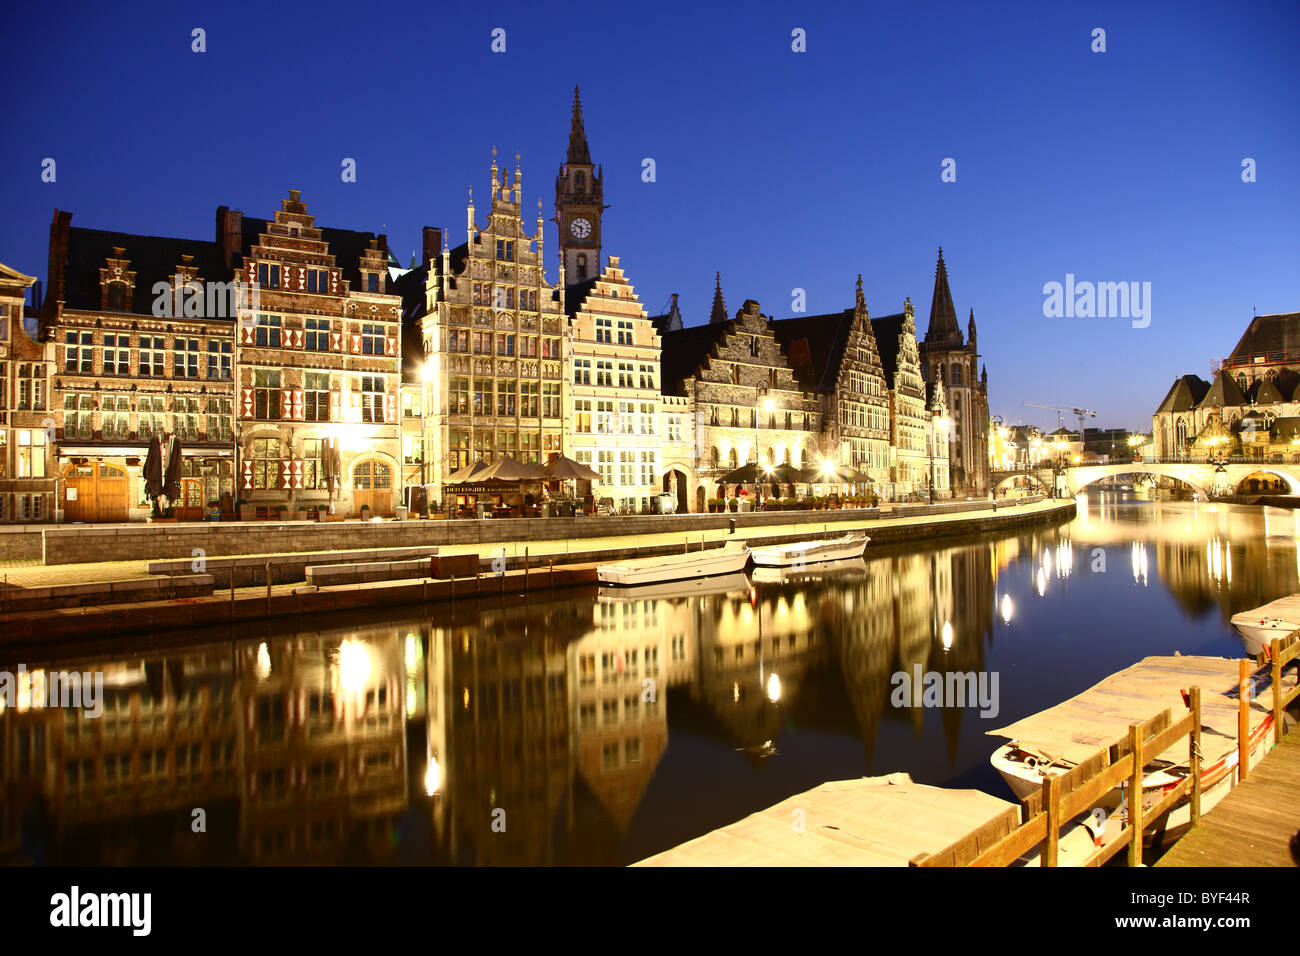 Old town, historic houses in the old town, river Leie, Ghent, East-Flanders, Belgium, Europe - Stock Image